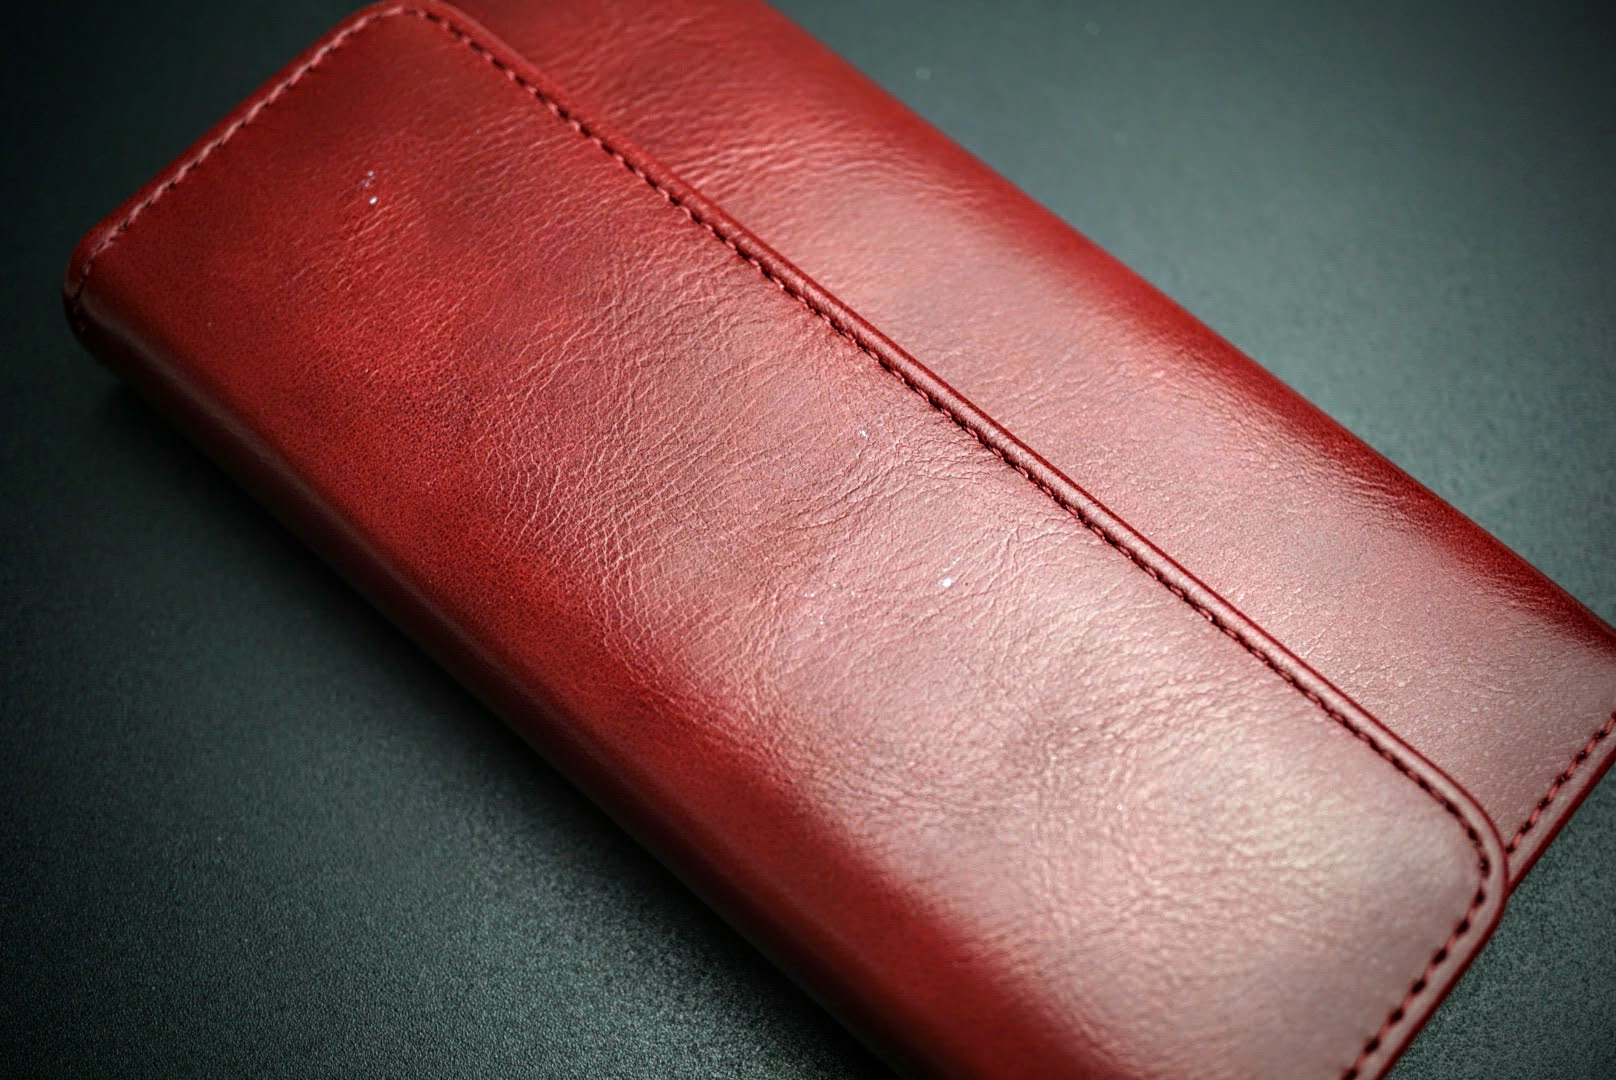 Androidguys Android News And Opinion Page 325 Byo Shell Clutch In Matte Burgundy Dsc05952